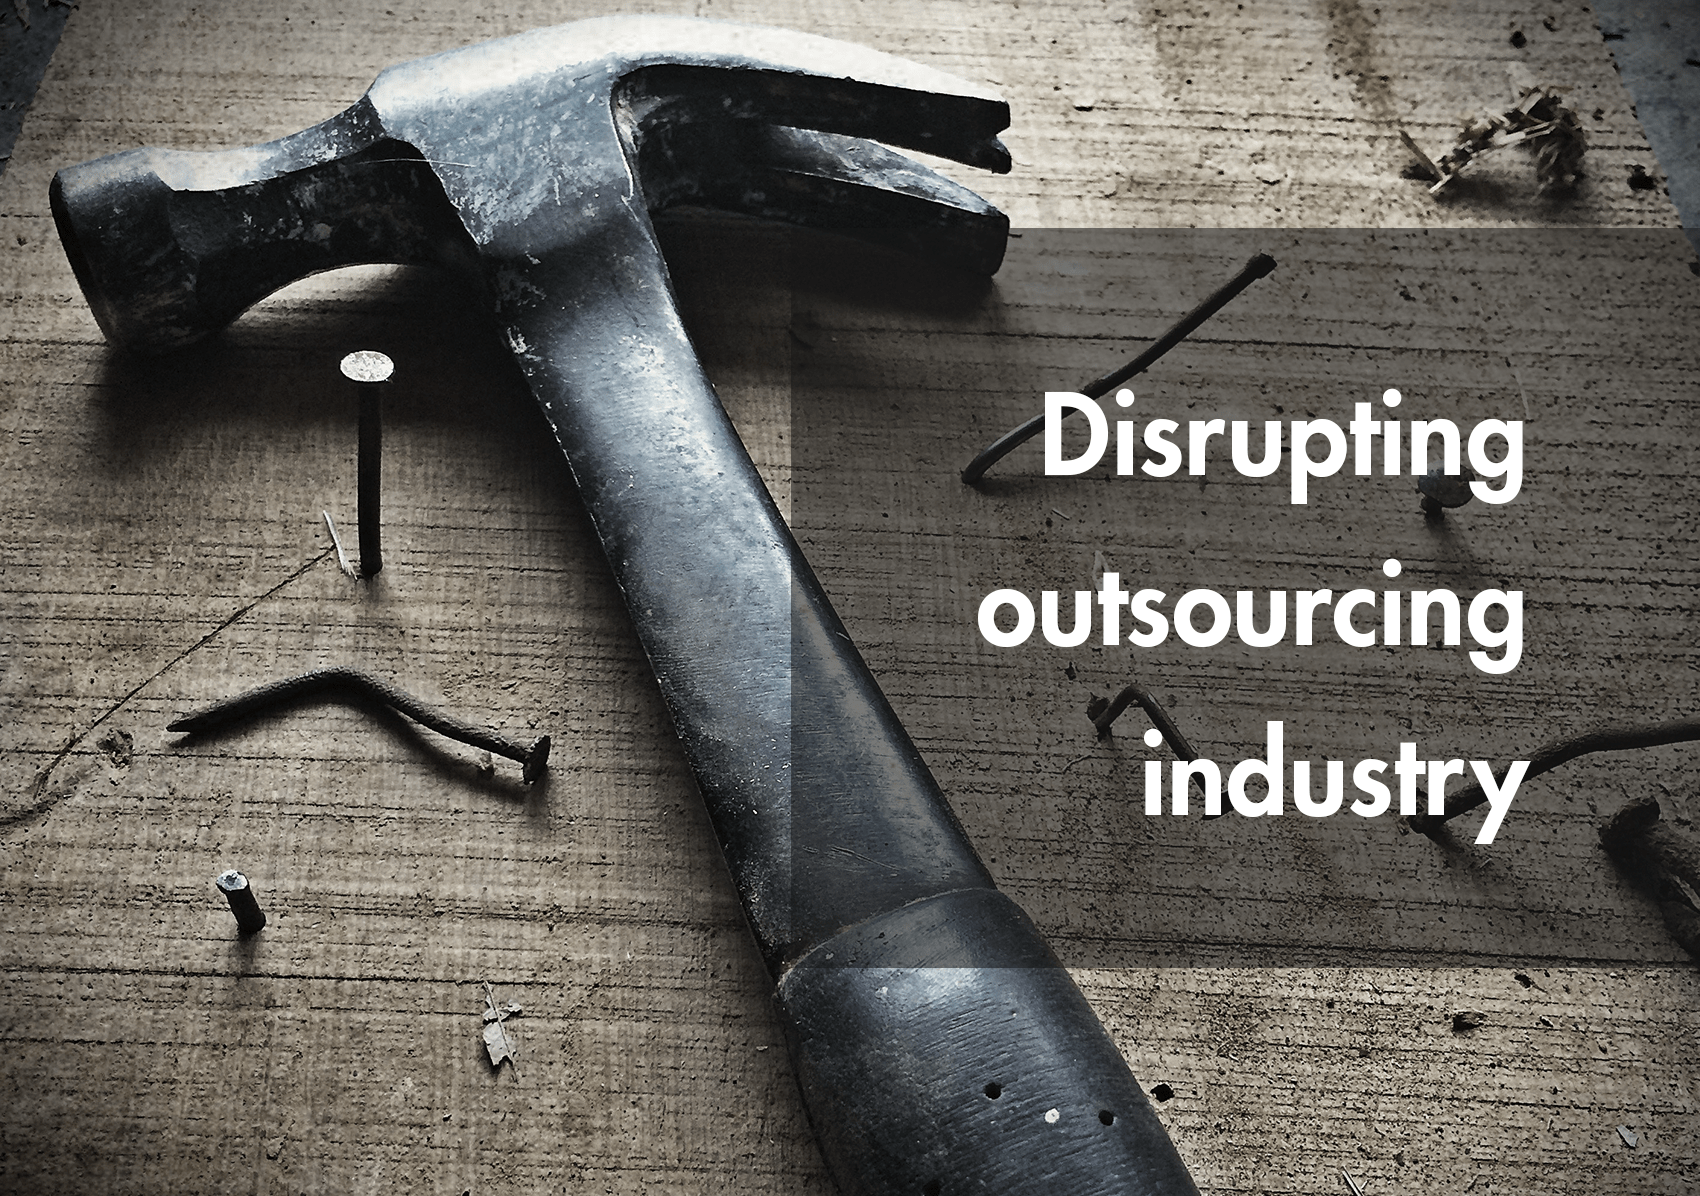 Disrupting outsourcing industry